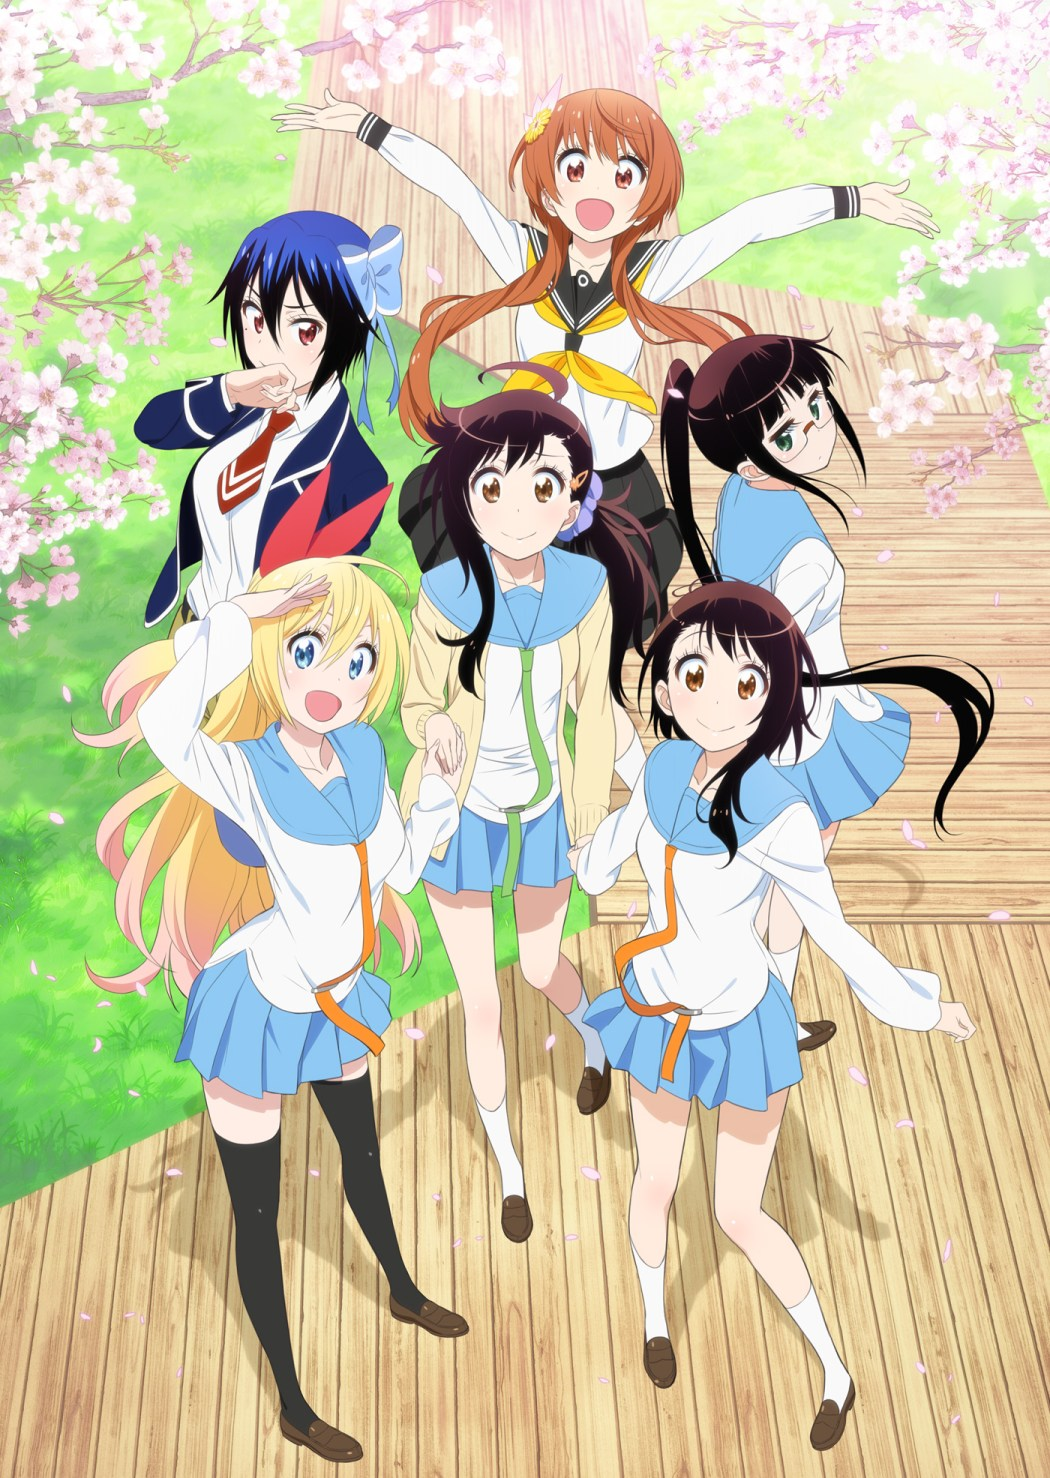 Nisekoi Season 2 Visual Revealed nisekoi 2nd season anime visual